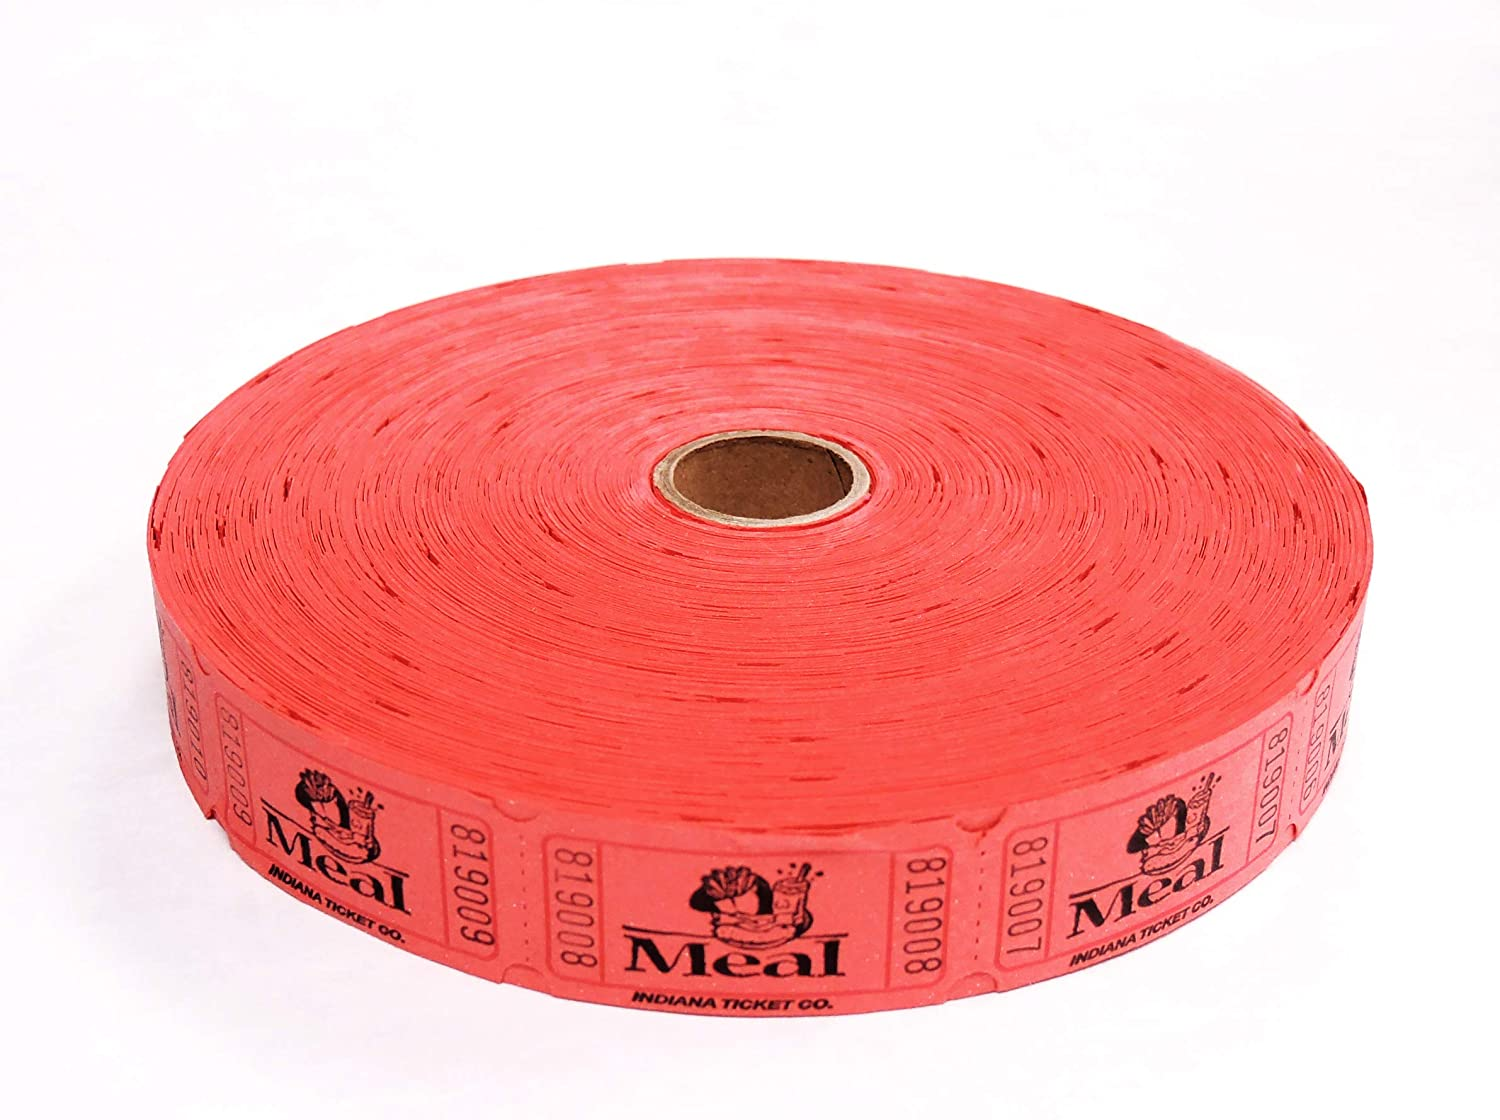 2000 Red Meal Single Roll Consecutively Numbered Raffle Tickets